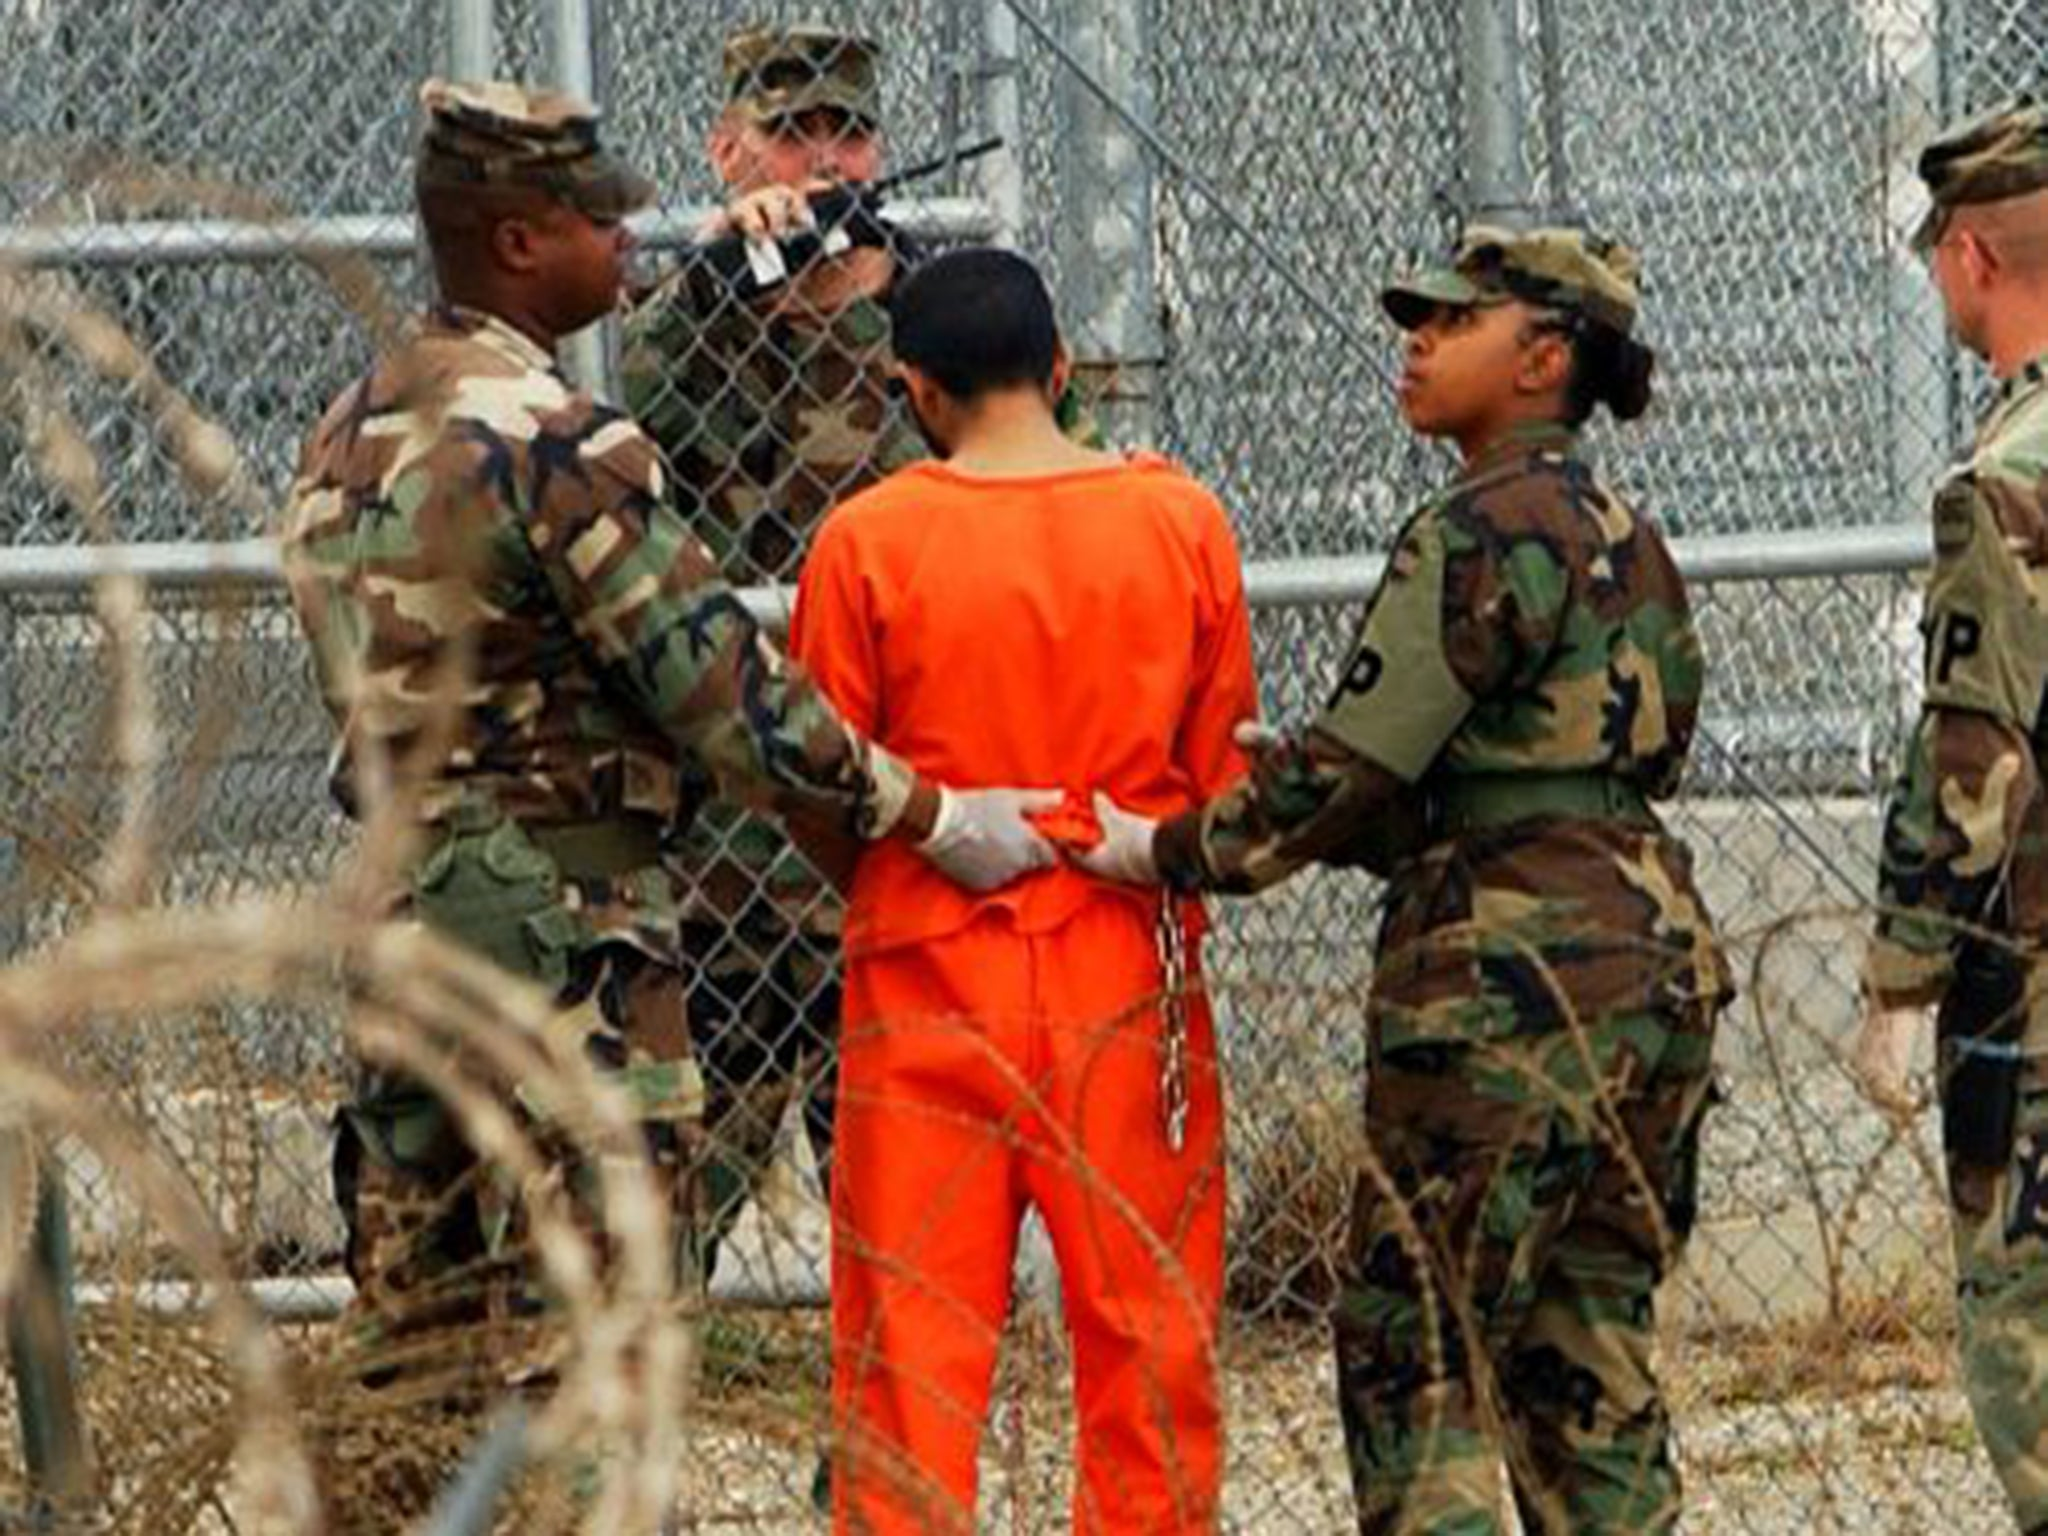 two more militants released from guantanamo bay return to conflict